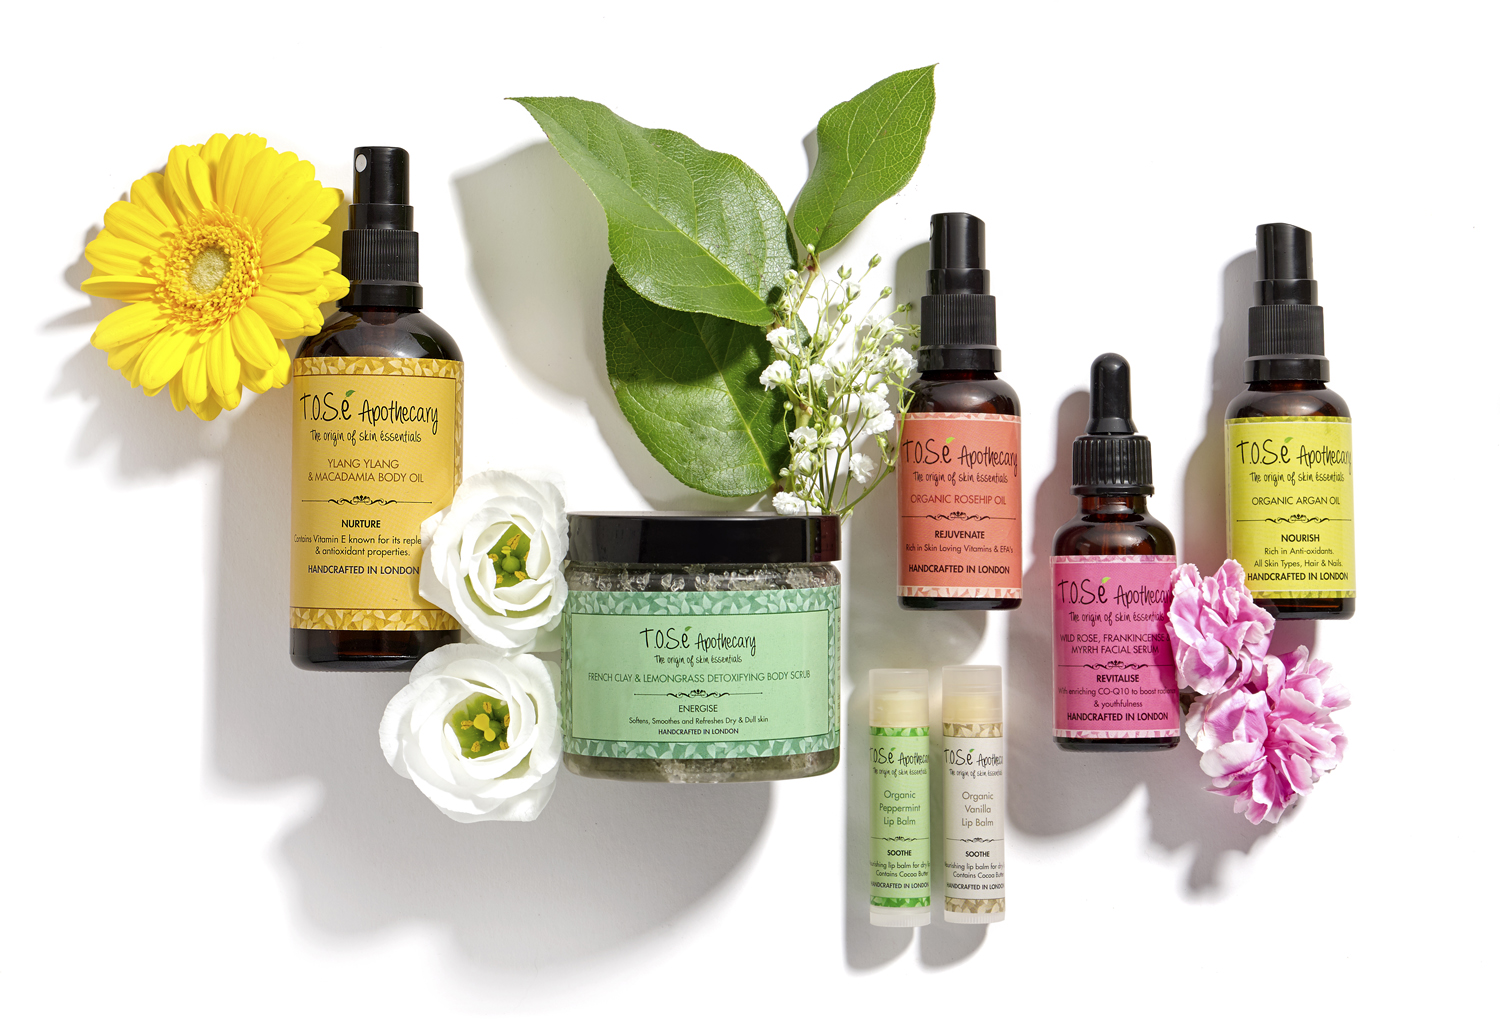 Beauty products, cosmetics make up in lifestyle image on white with flowers and fresh foliage around products, London still life product photographer